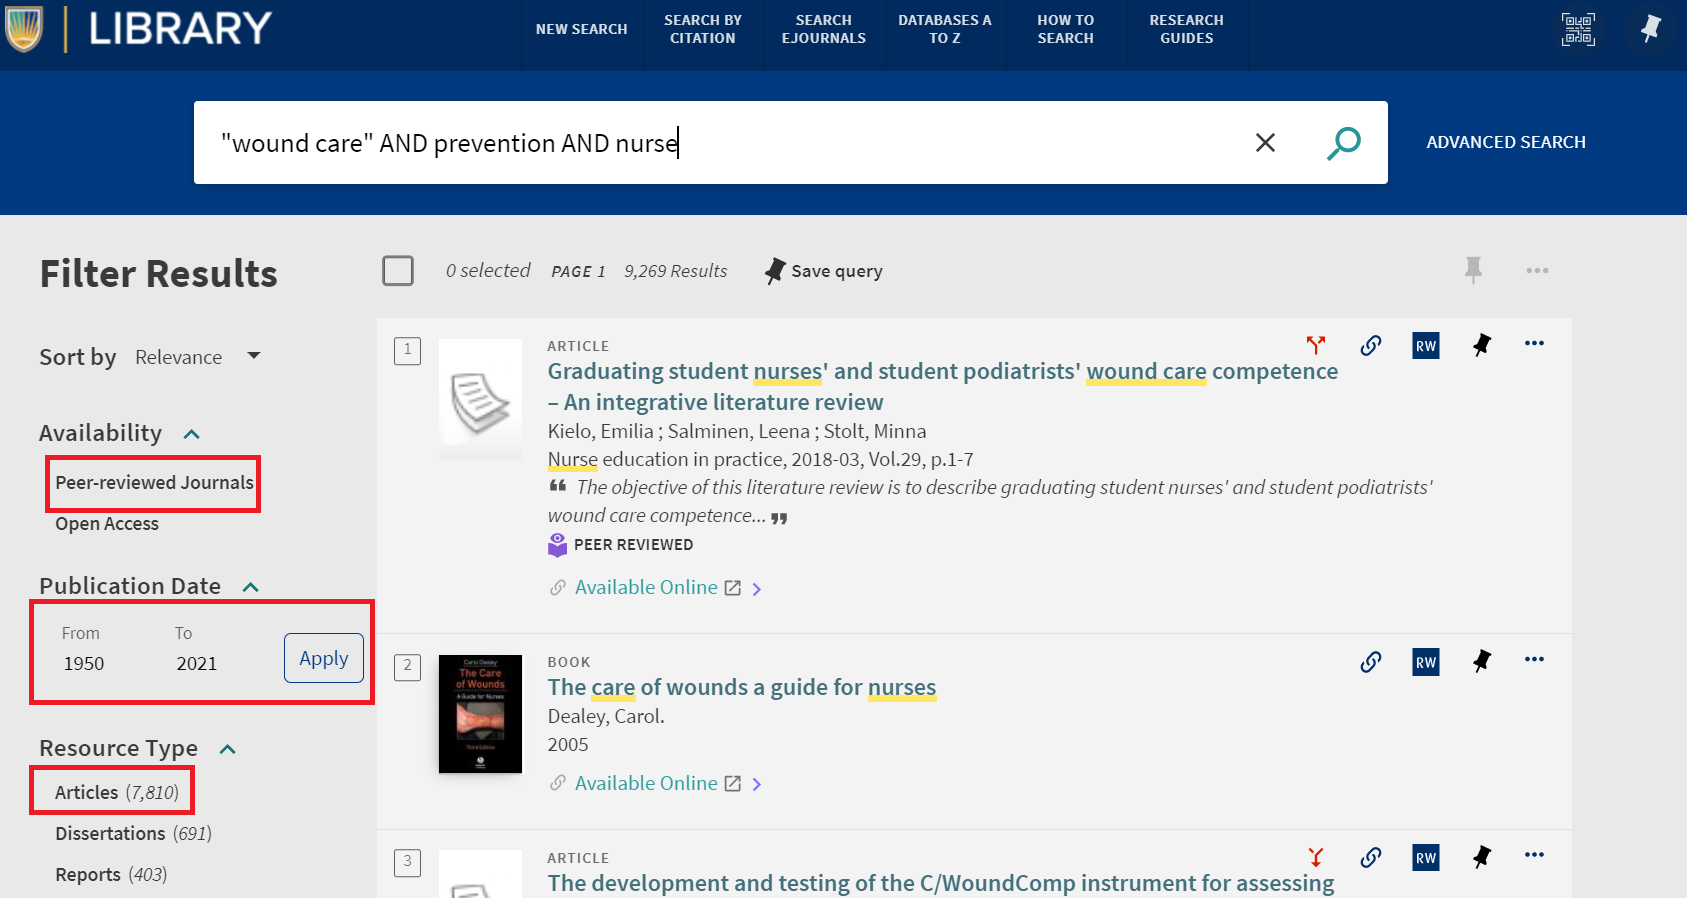 Search Everything search for wound care prevention in nursing search results